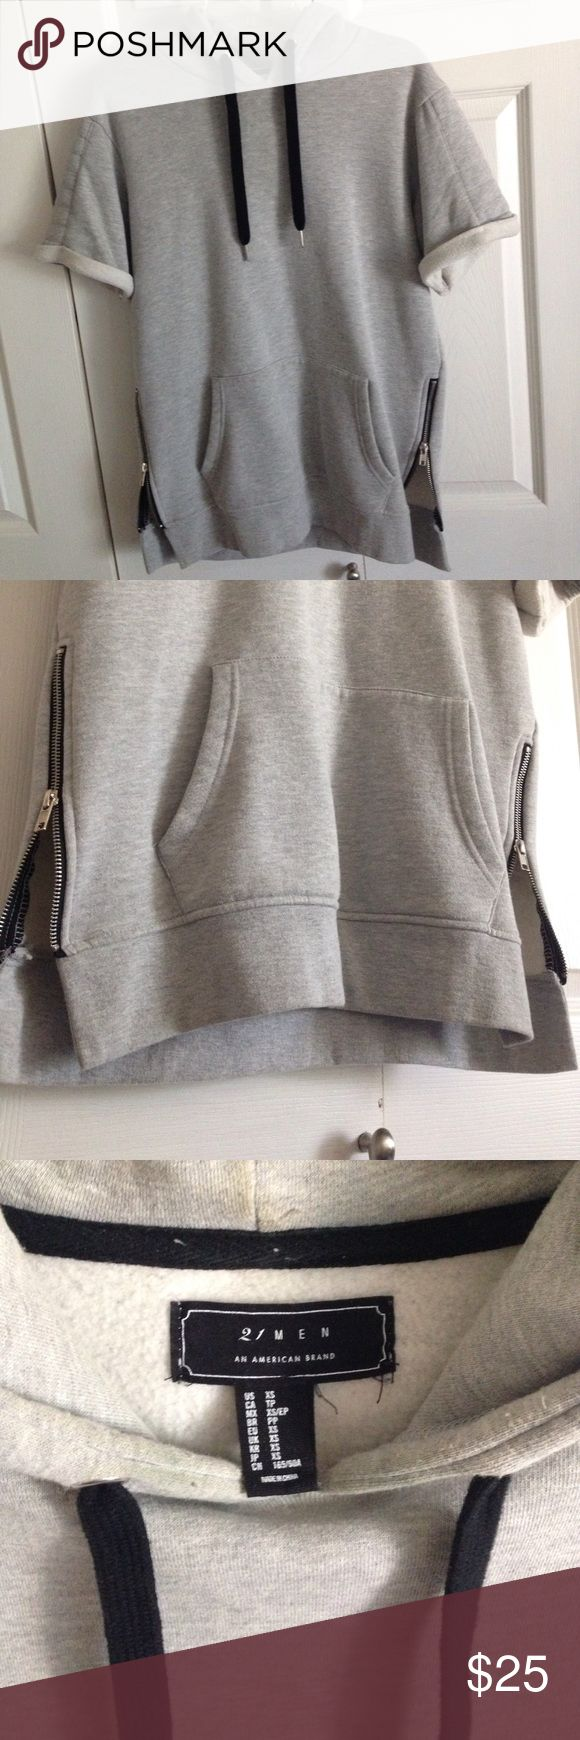 F21 Men Sleeveless Hoodie Gray sleeveless hoodie with side zippers and detailed shoulder design. Forever 21 Shirts Sweatshirts & Hoodies